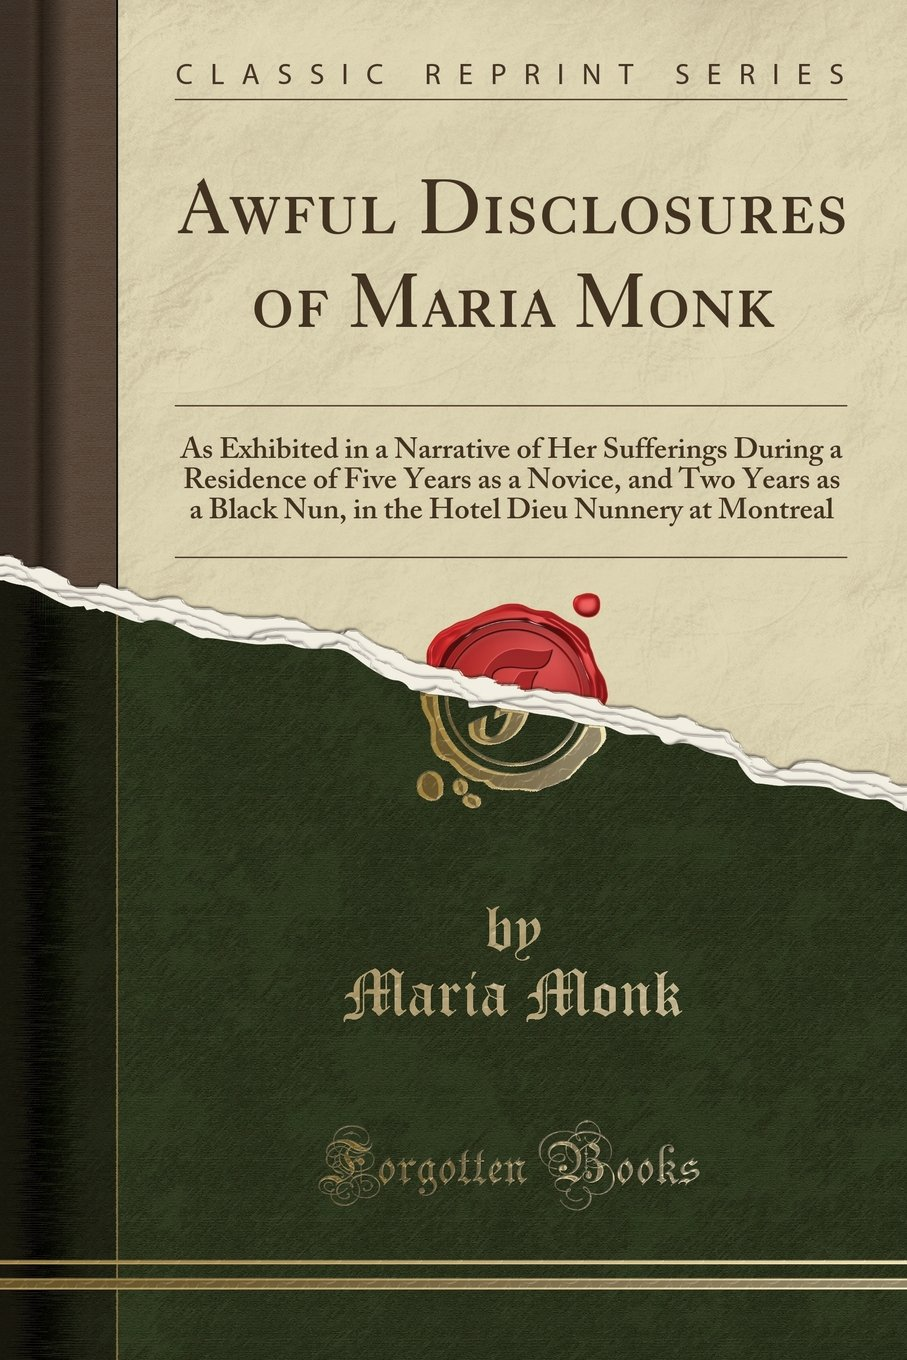 Download Awful Disclosures of Maria Monk: As Exhibited in a Narrative of Her Sufferings During a Residence of Five Years as a Novice, and Two Years as a Black ... Dieu Nunnery at Montreal (Classic Reprint) PDF